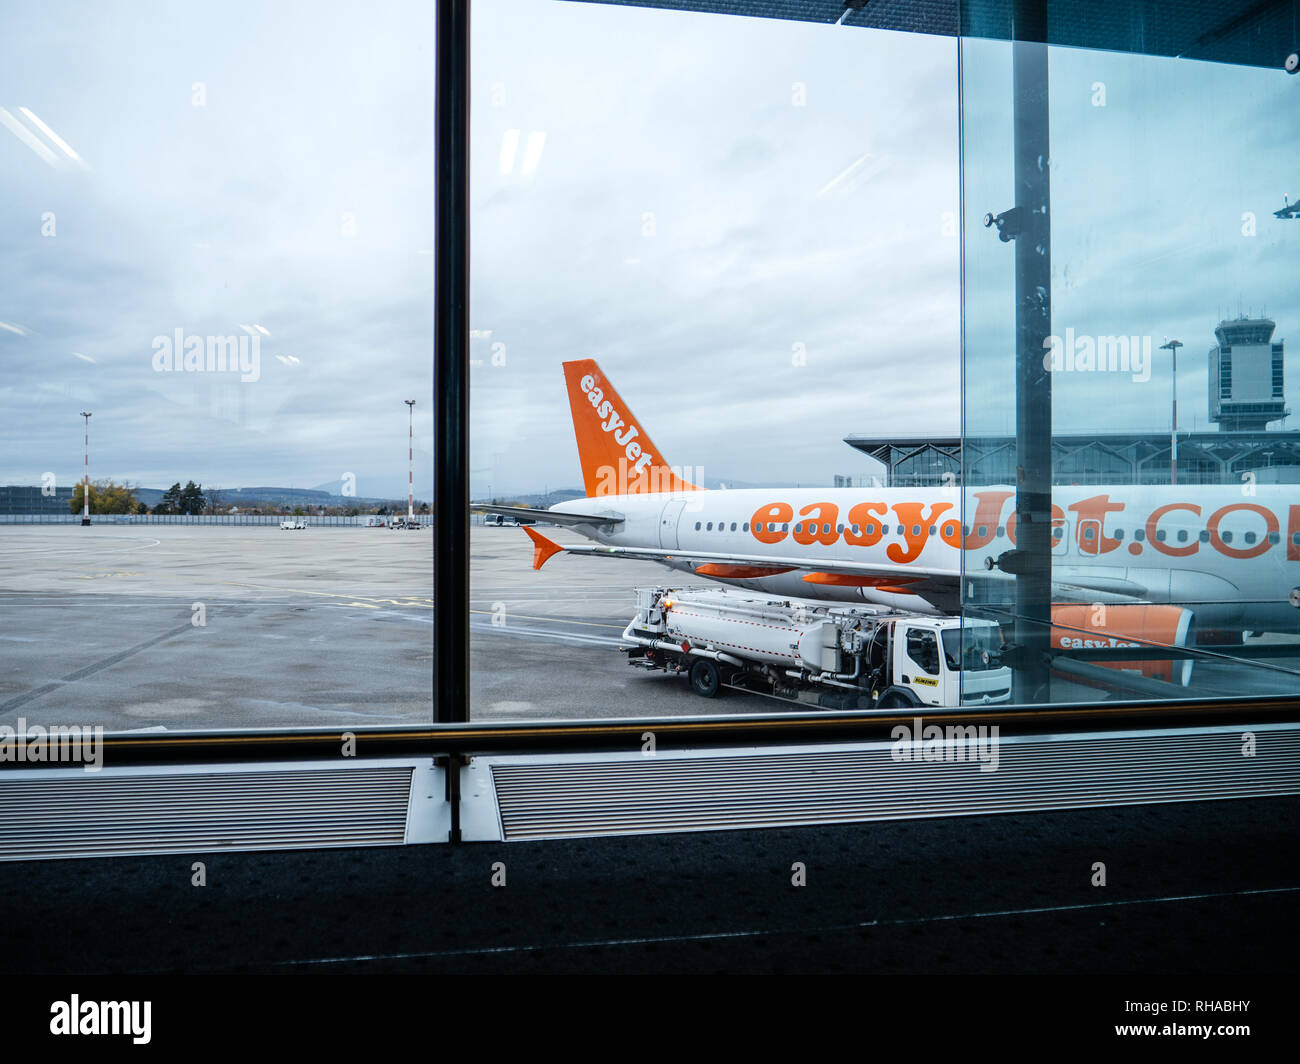 Basel, Switzerland - 11 Nov 2018: Airbus Boeing operated by EasyJet airlines on tarmac of Basel Mulhouse International Airport view from the interior of the Airport Terminal - Stock Image